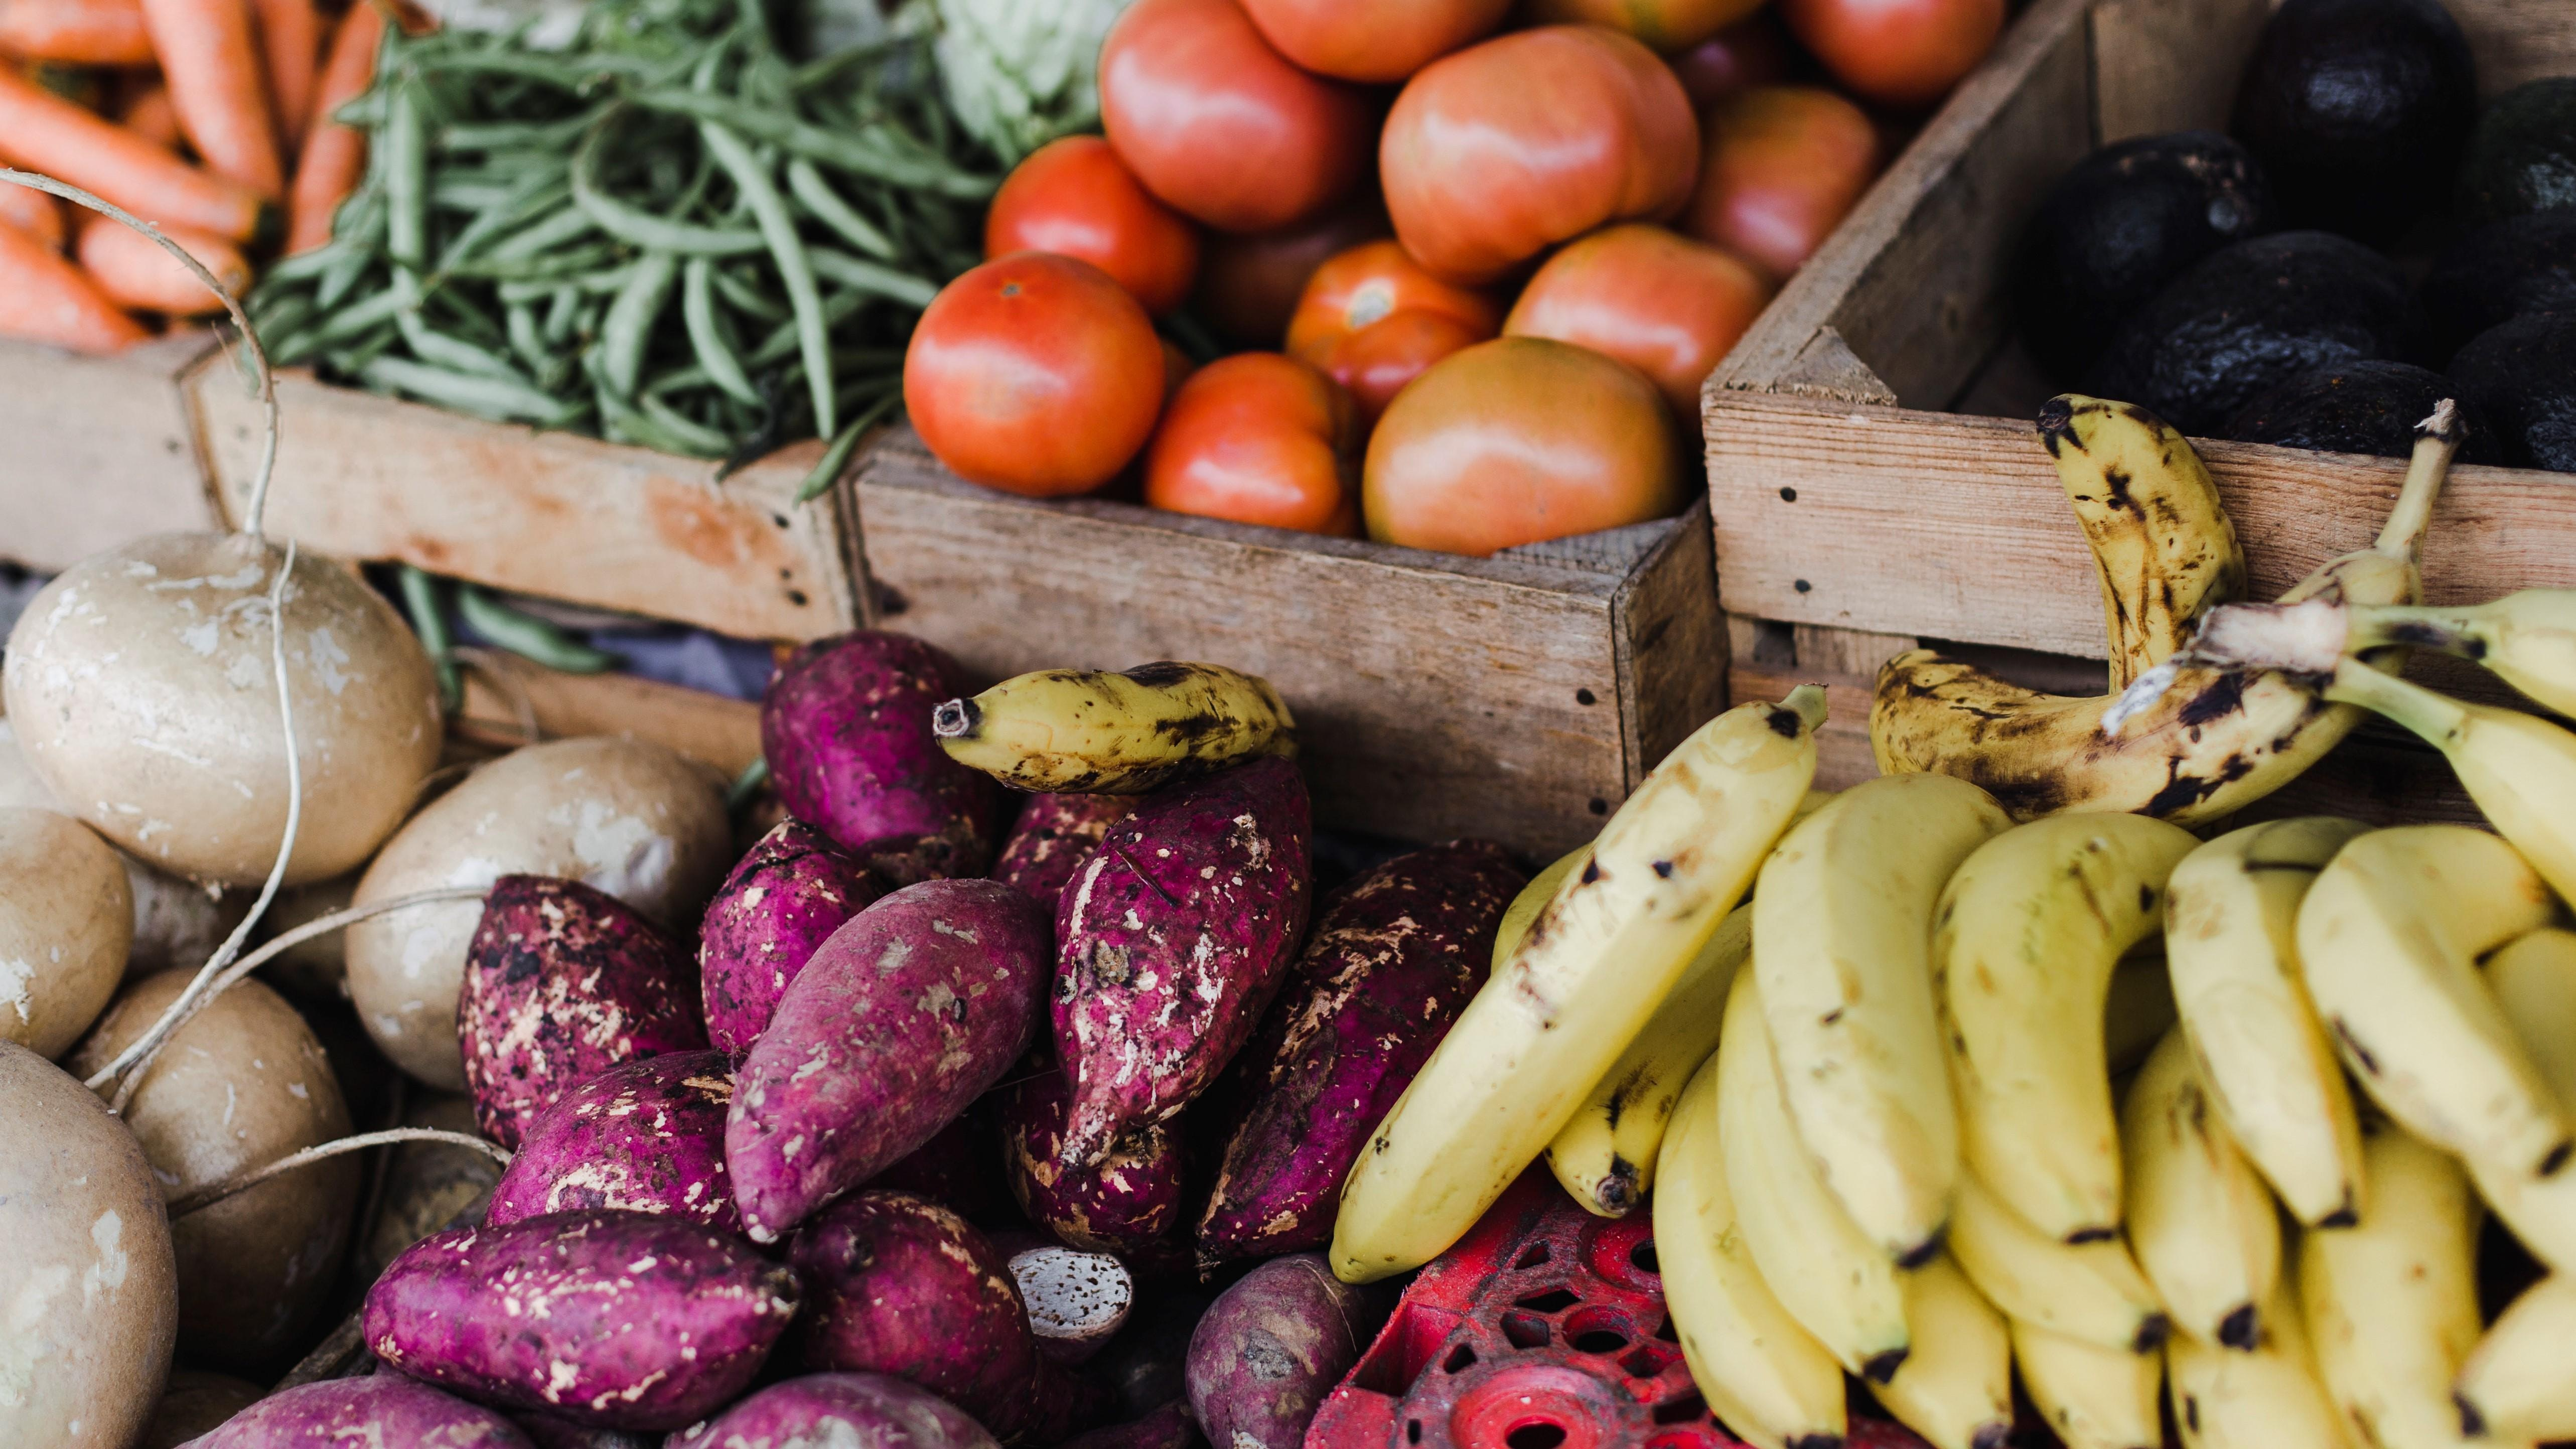 Virtual Veg Edge - The Effects of Food Waste in the US